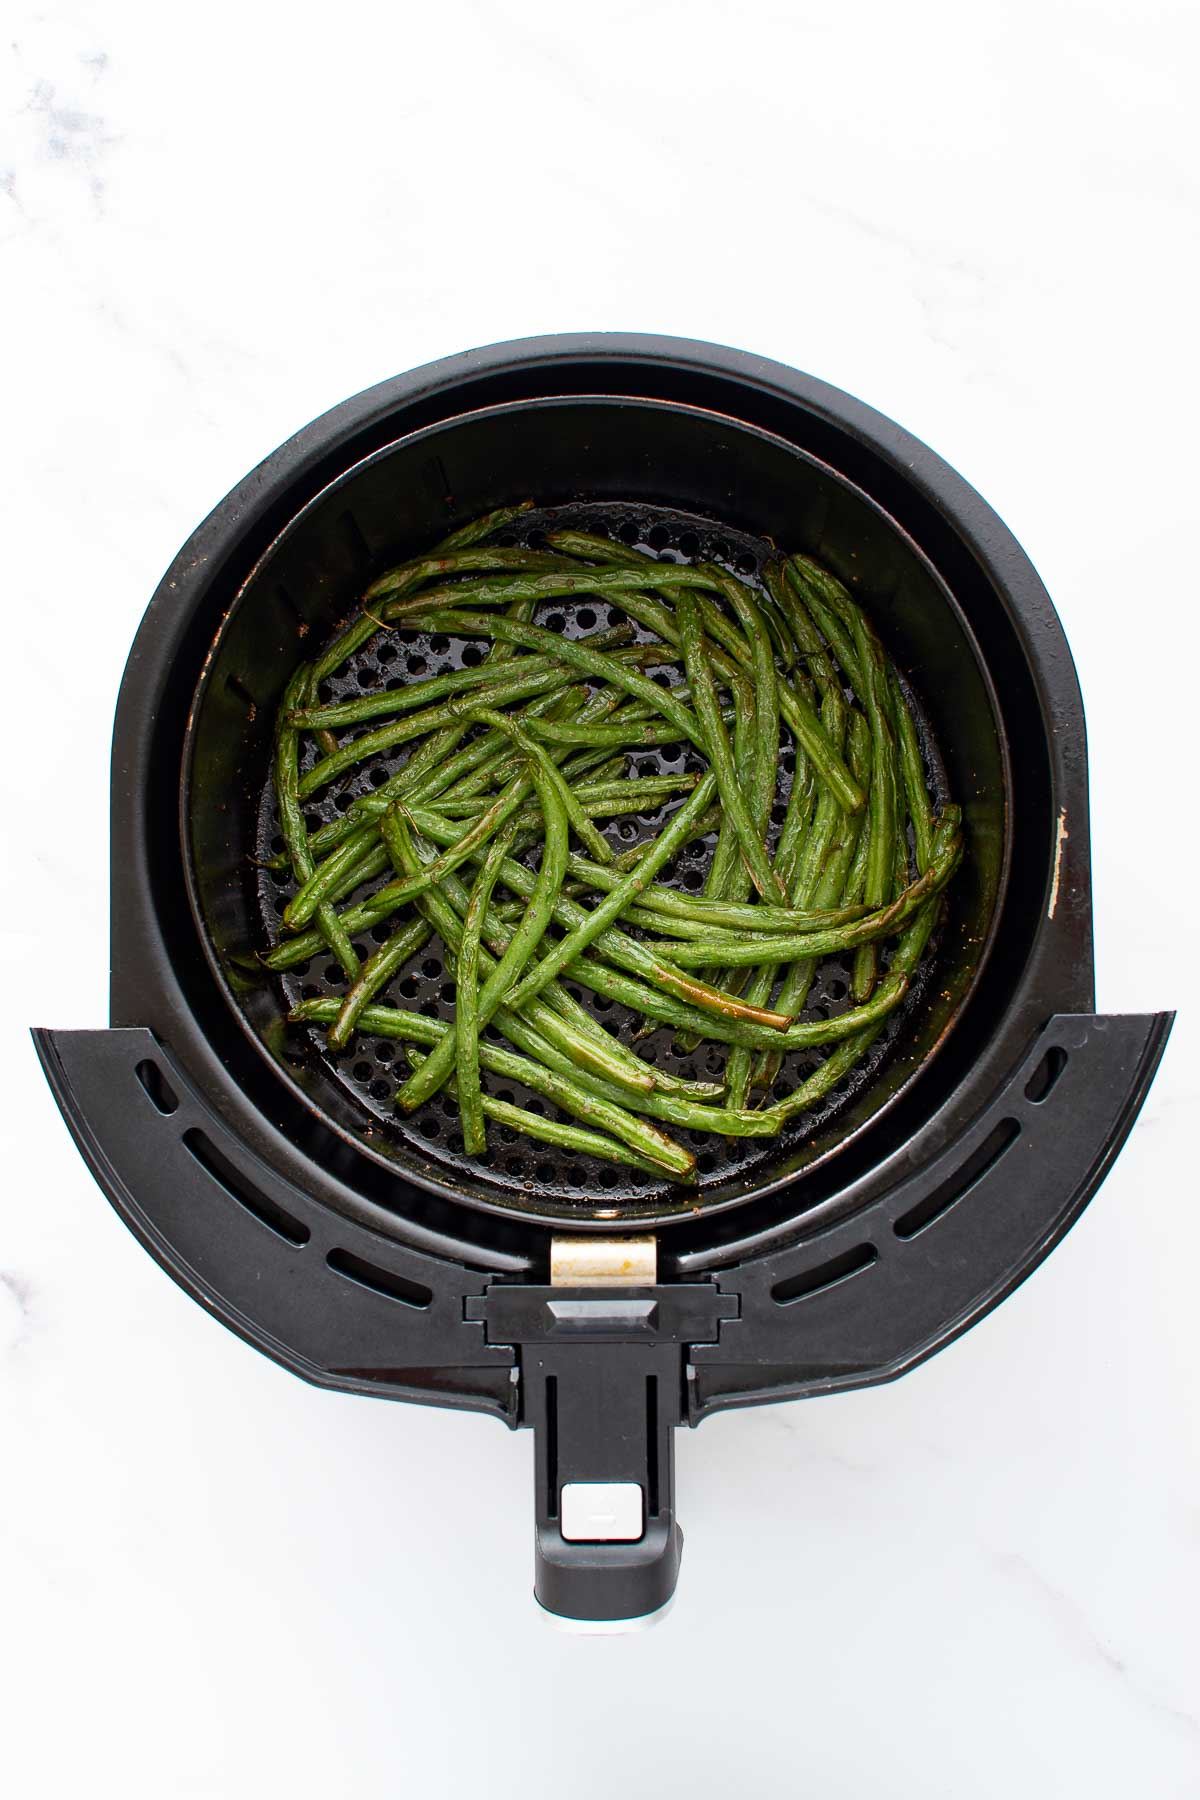 Roasted green beans in an air fryer.